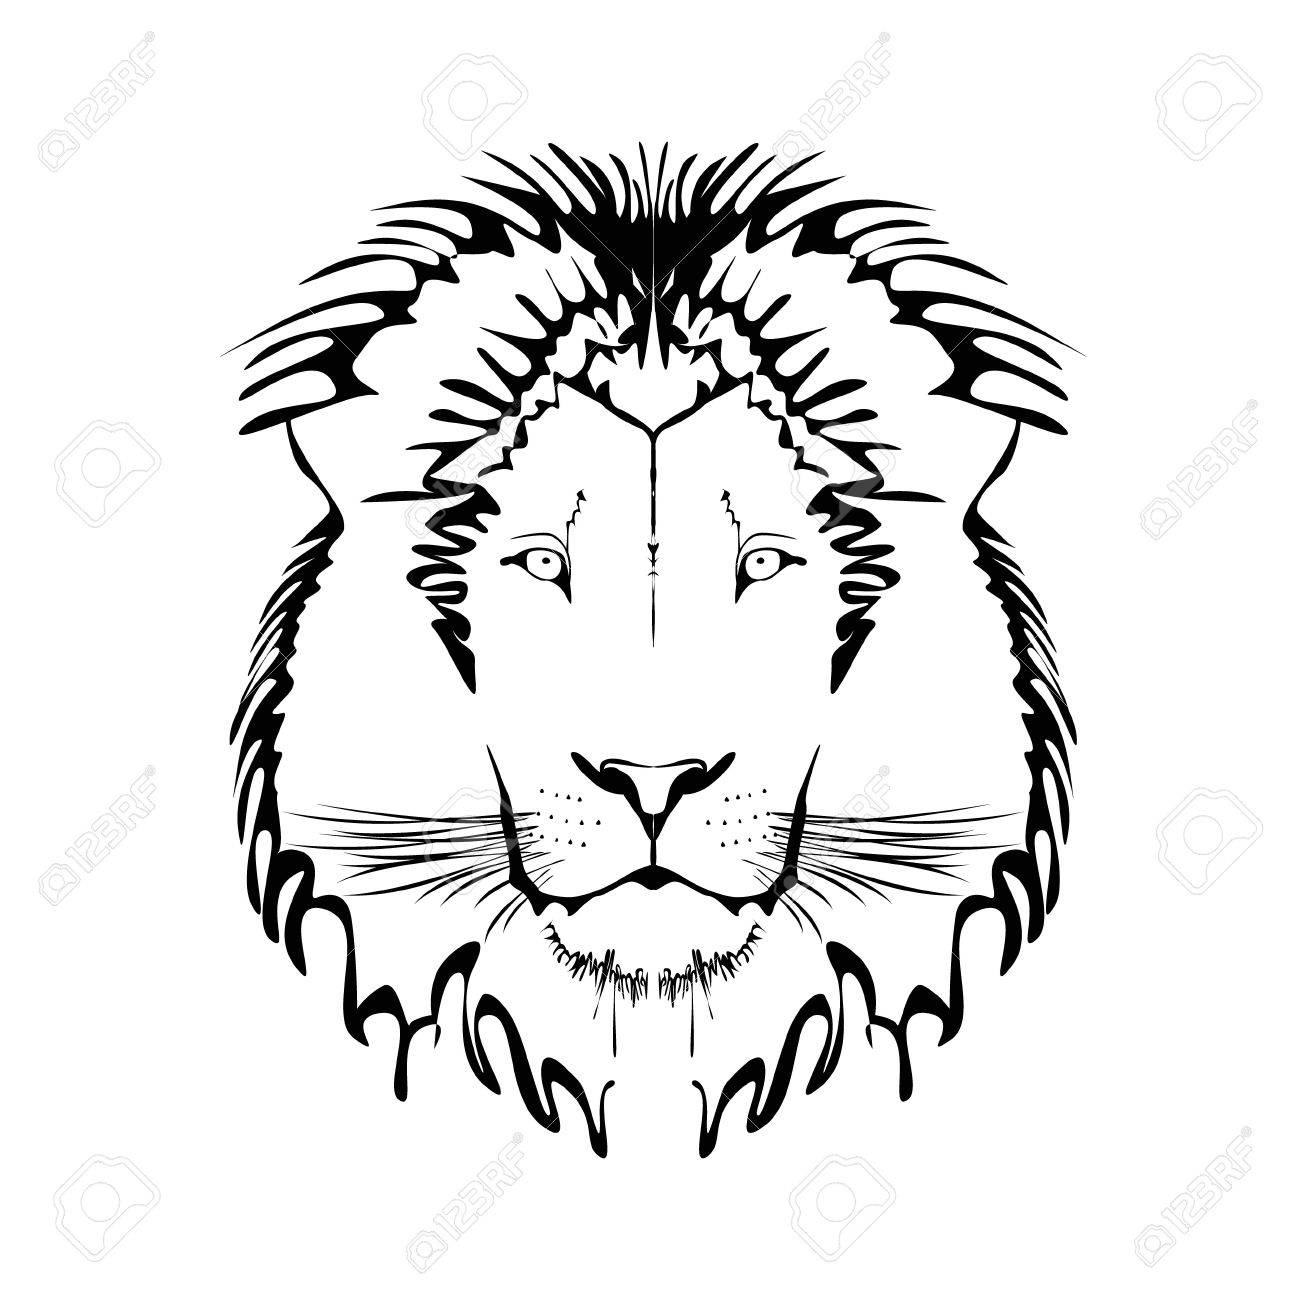 Vector Black And White Tattoo King Lion Illustration Royalty Free